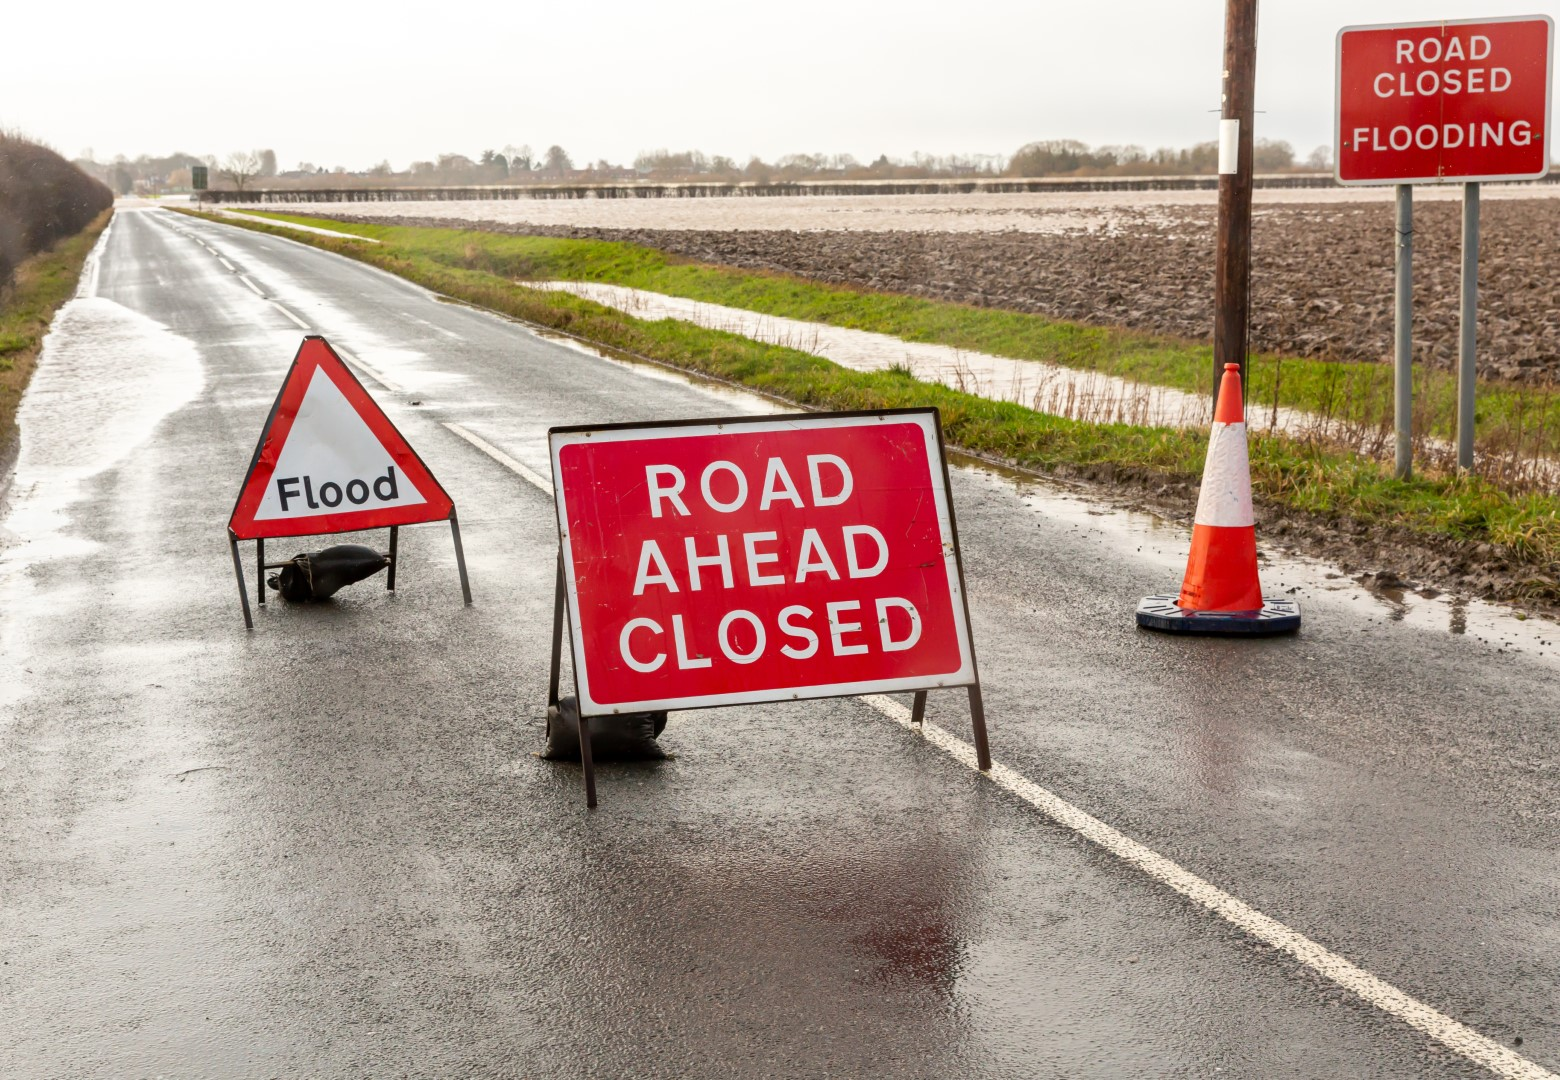 Flood management: mitigating risks, minimising costs and maximising opportunities